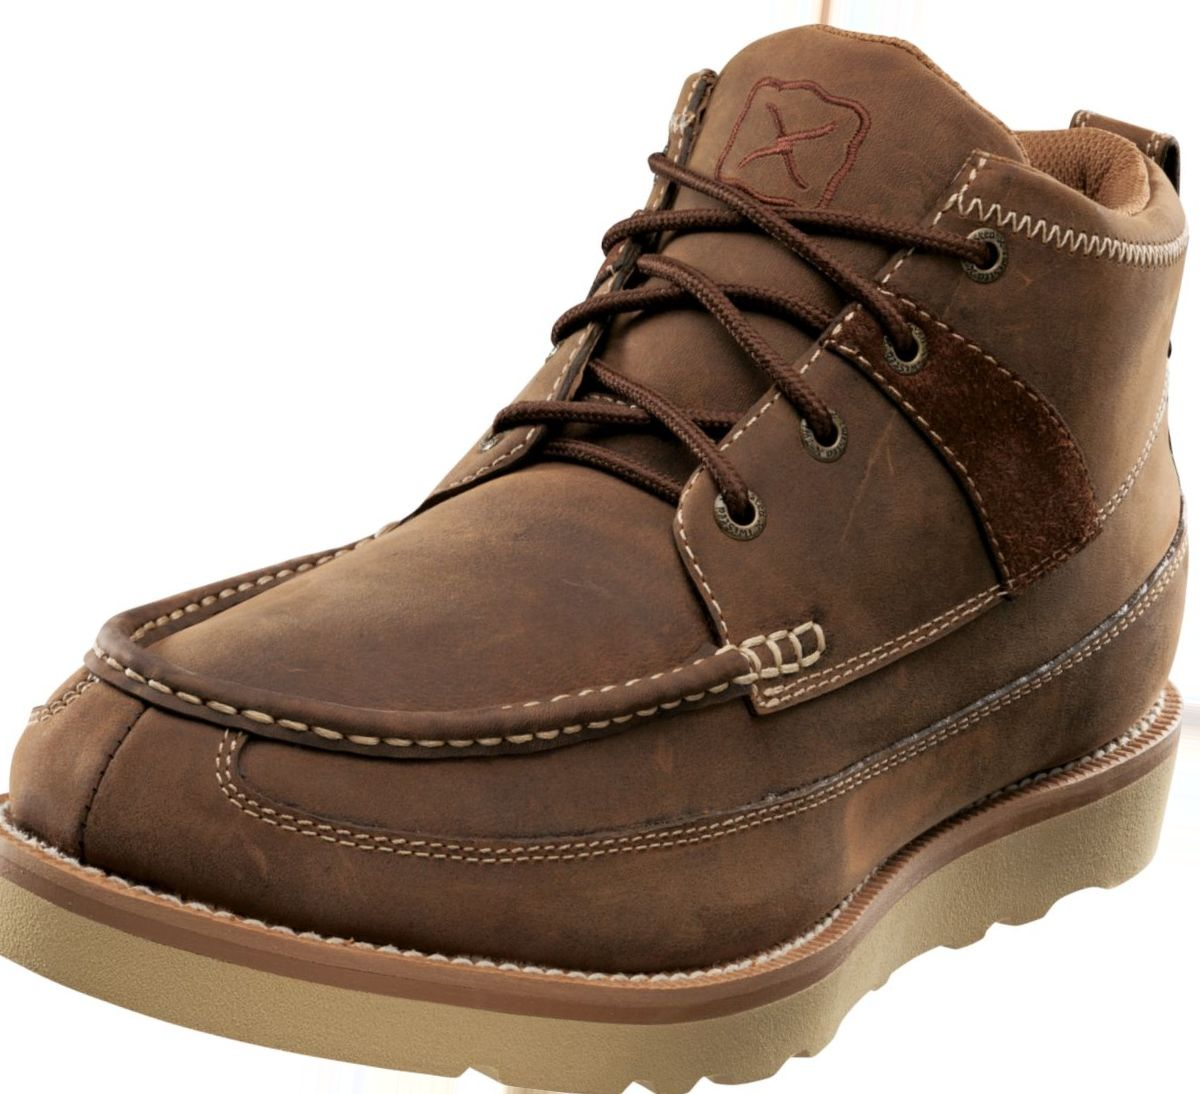 Twisted X Men's Saddle Casual Shoes